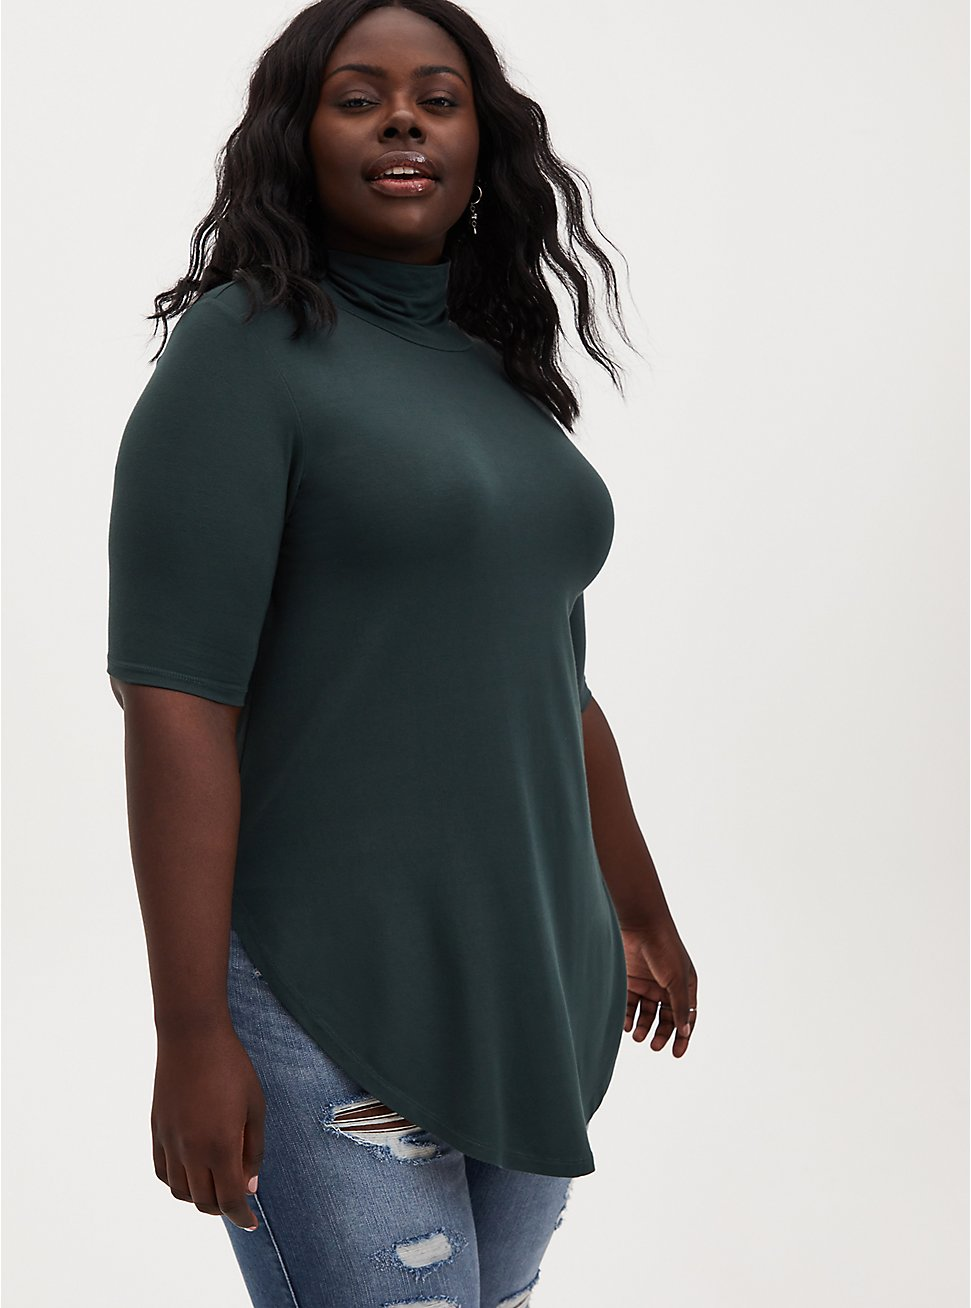 Super Soft Green Turtleneck Tunic  , , hi-res